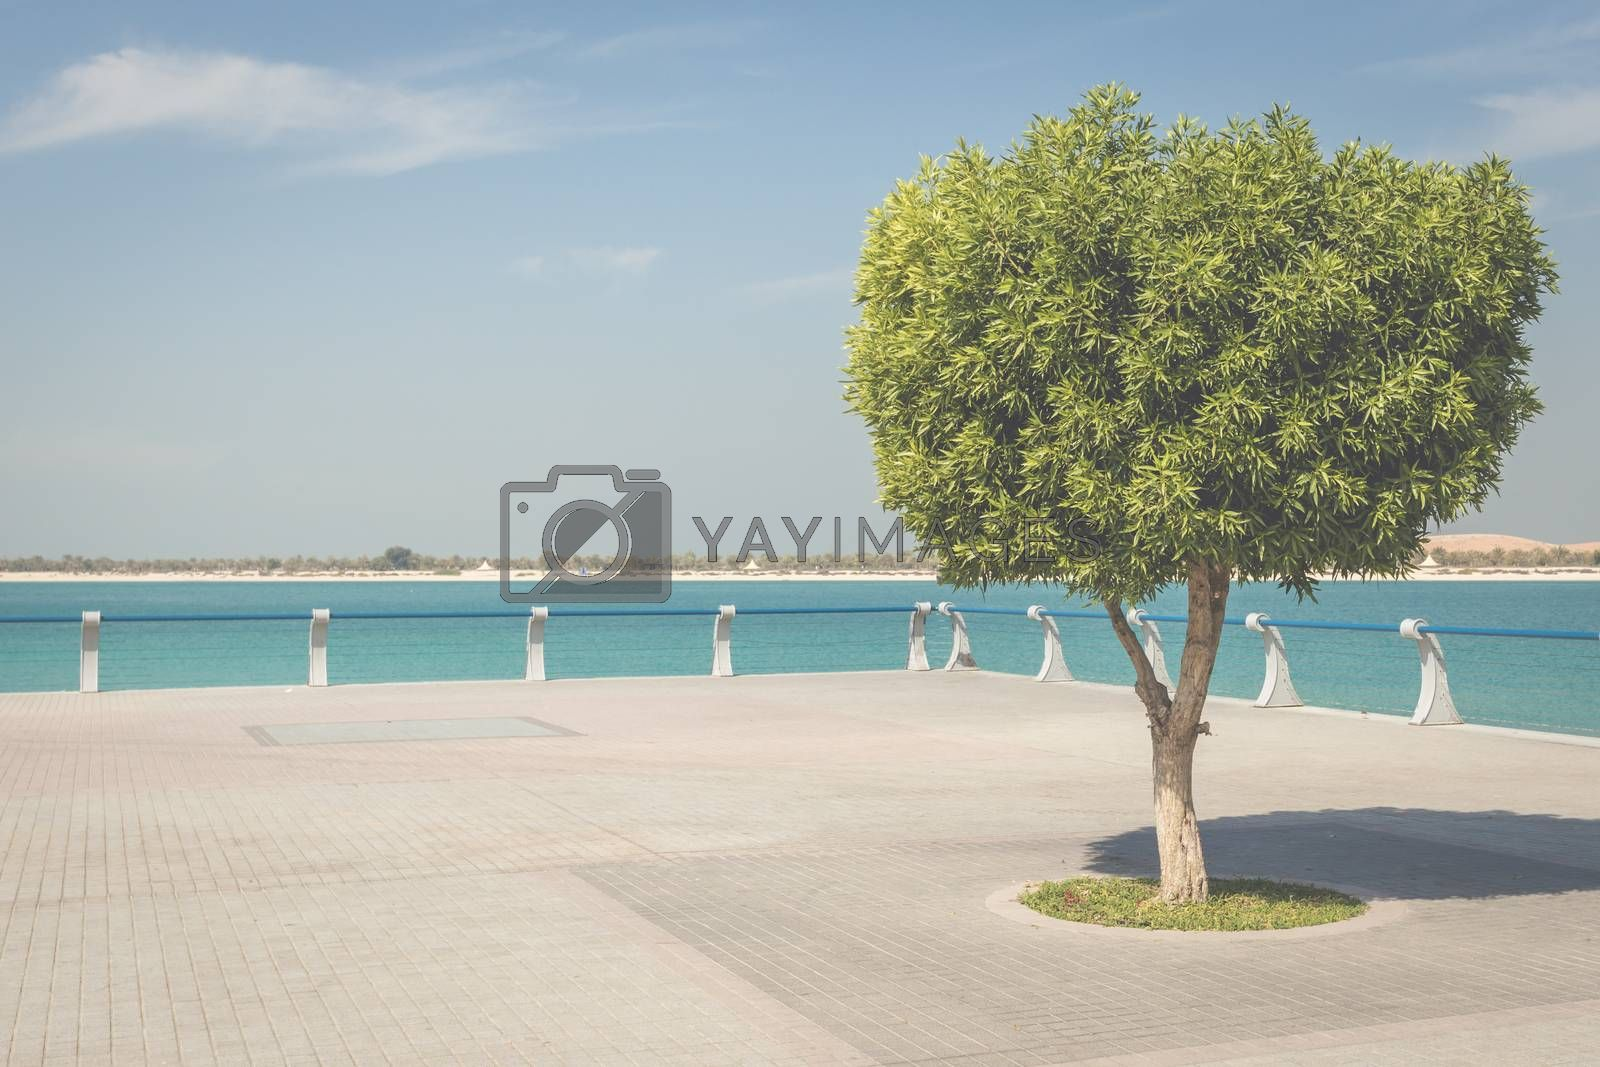 Seafront against the backdrop of Abu Dhabi